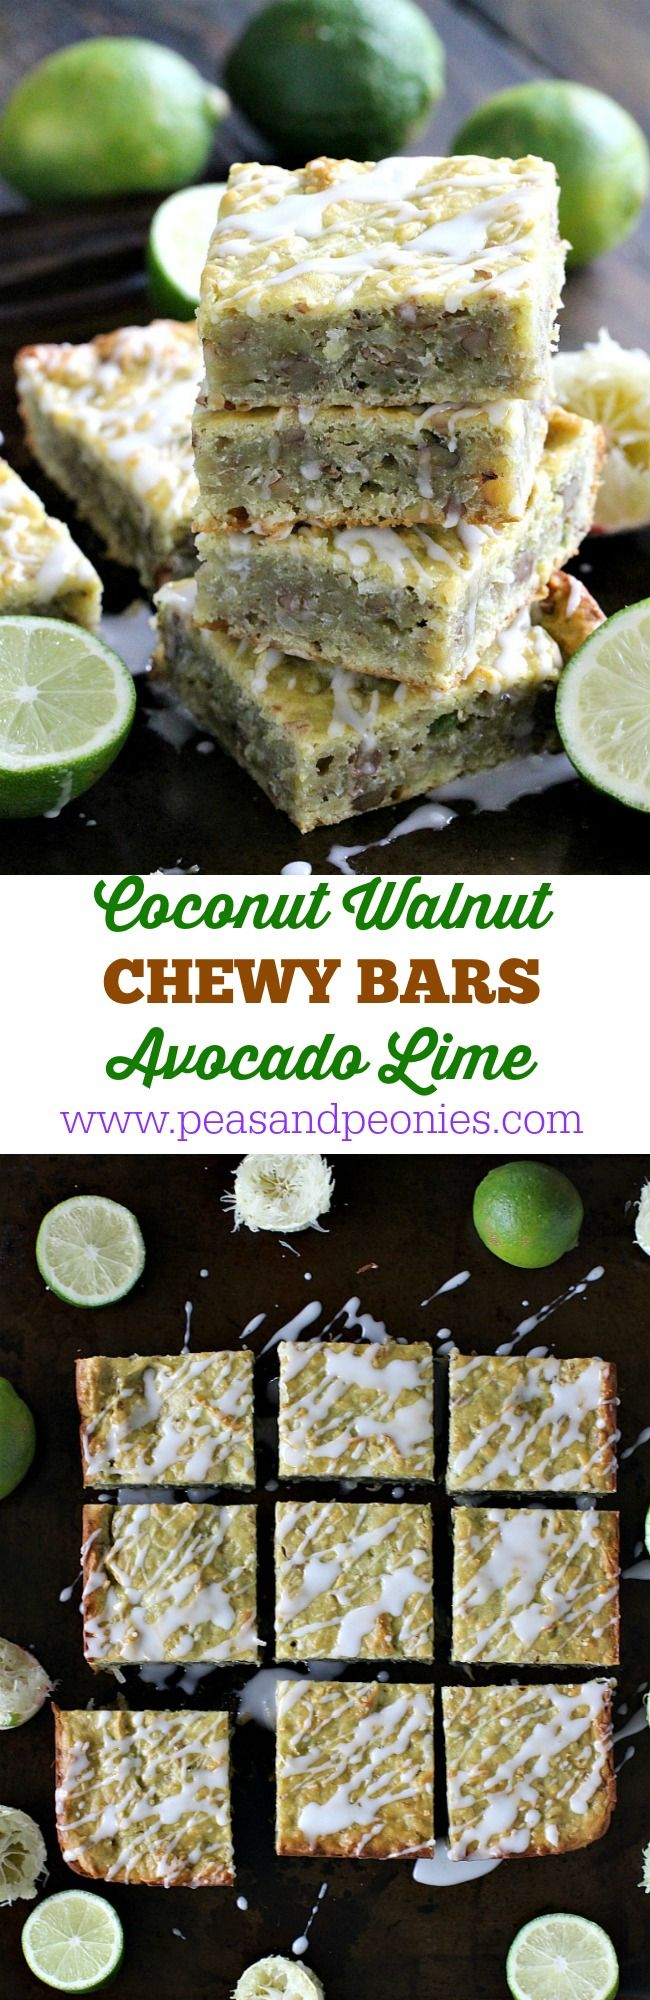 Coconut Avocado Lime Bars are sweet, chewy, dense and refreshing. Loaded with citrusy lime zest, coconut flakes, avocado and walnuts. - Peas and Peonies